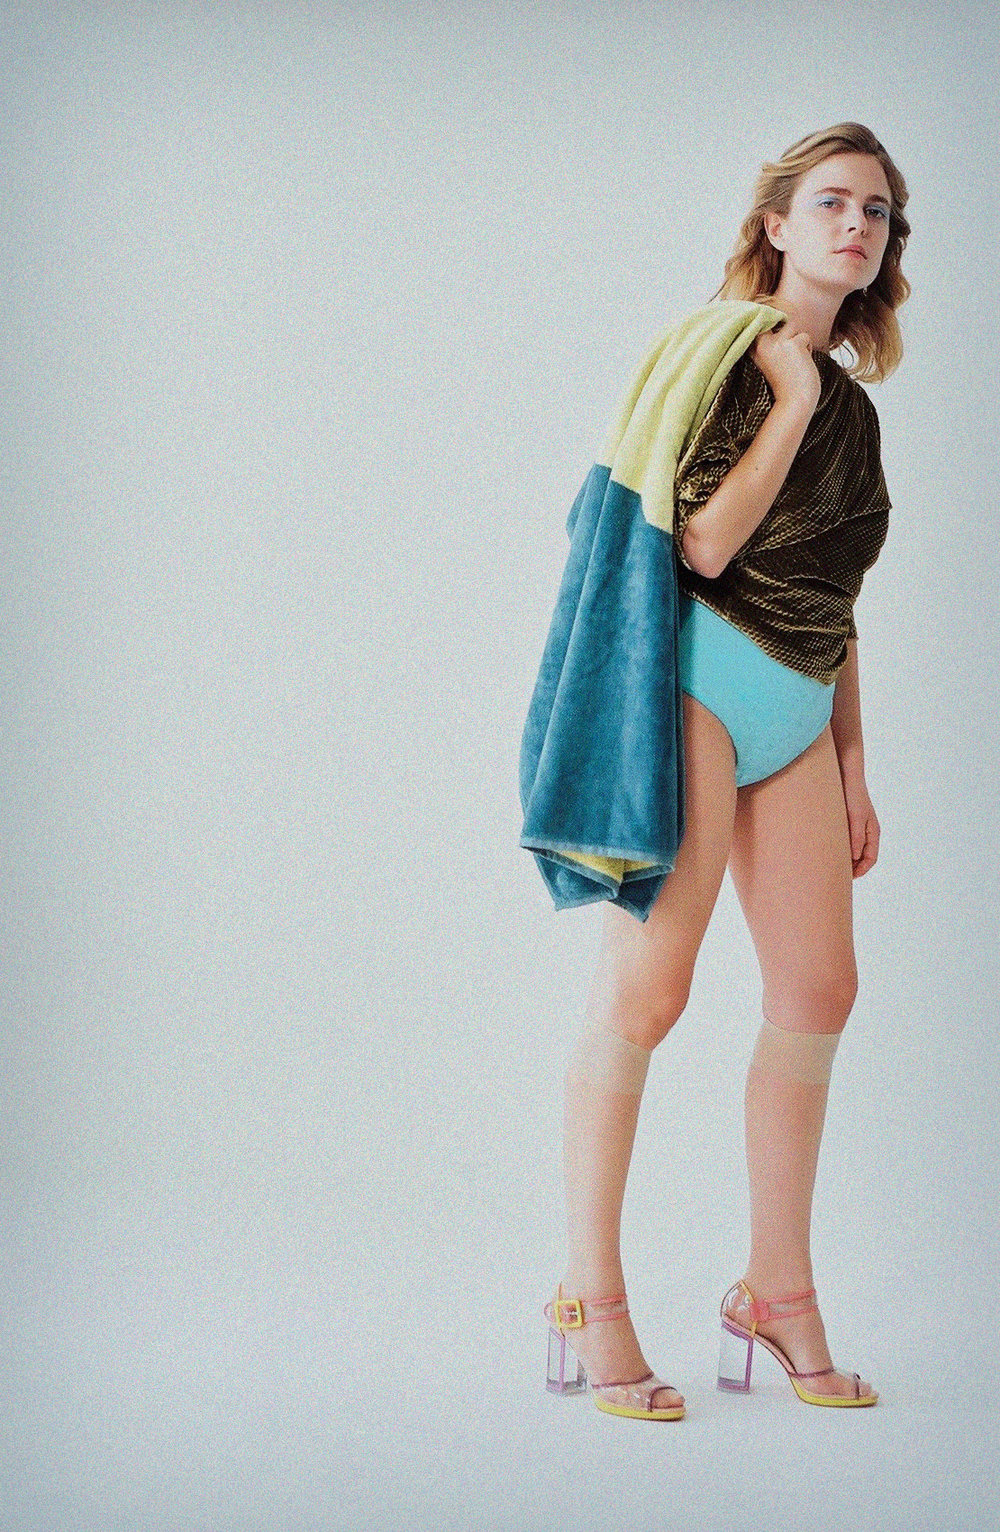 Top by Rachel Comey, Swimsuit by Albertine, Shoes by Christian Louboutin